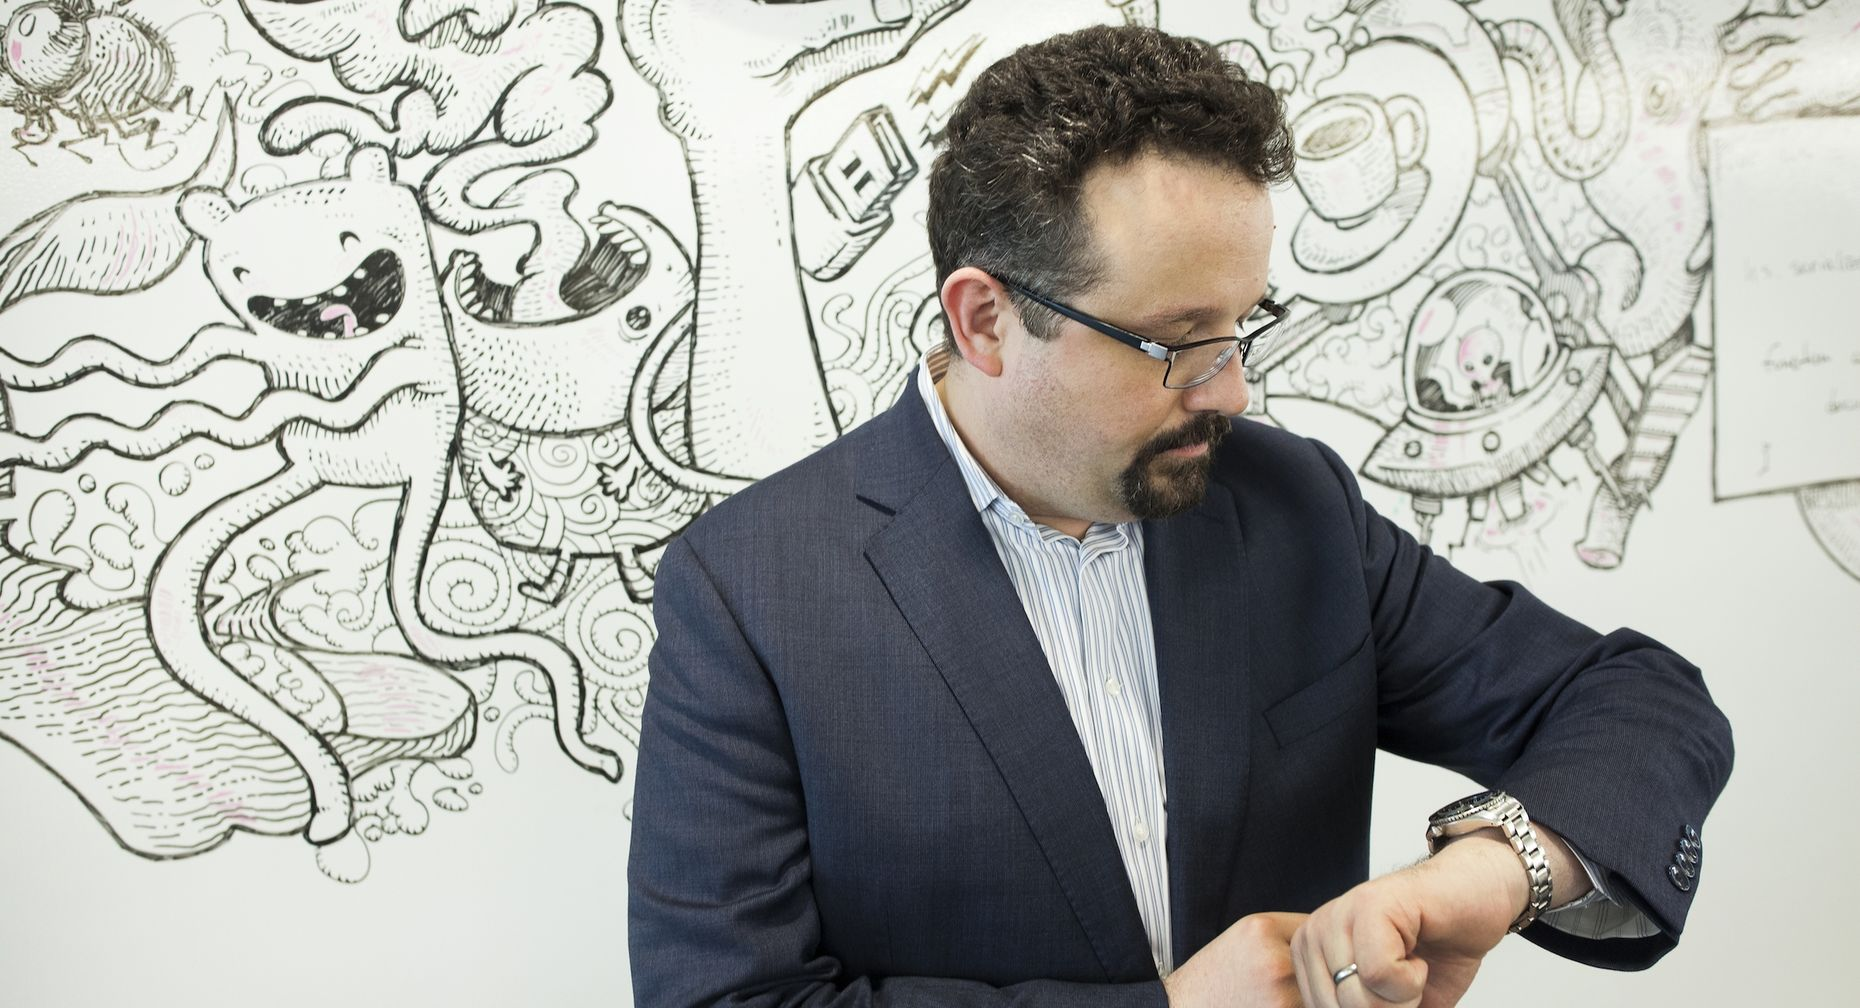 Evernote CEO Phil Libin. Photo by Evernote.